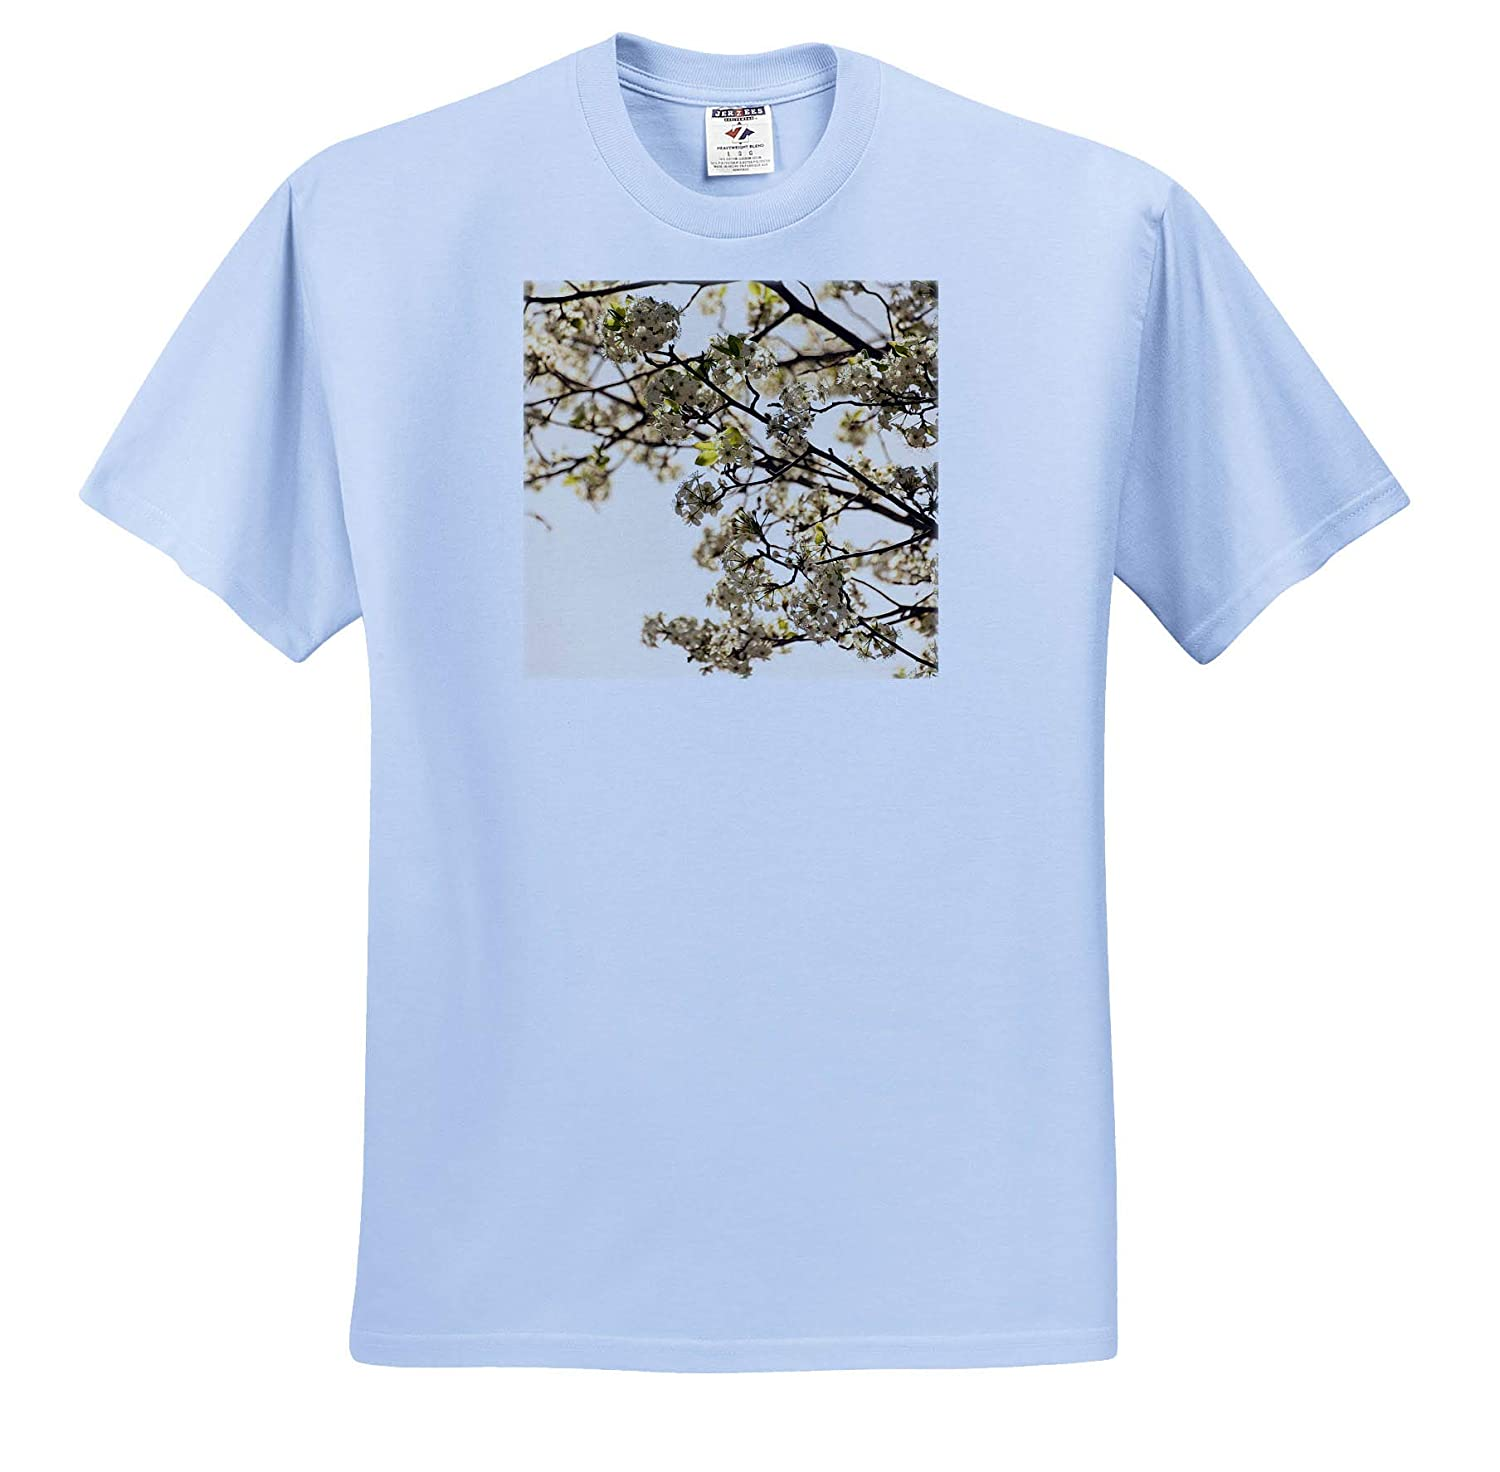 A Warm Flowering Tree That is in The Sunlight in Spring Adult T-Shirt XL ts/_319594 3dRose Jos Fauxtographee- Blossoms